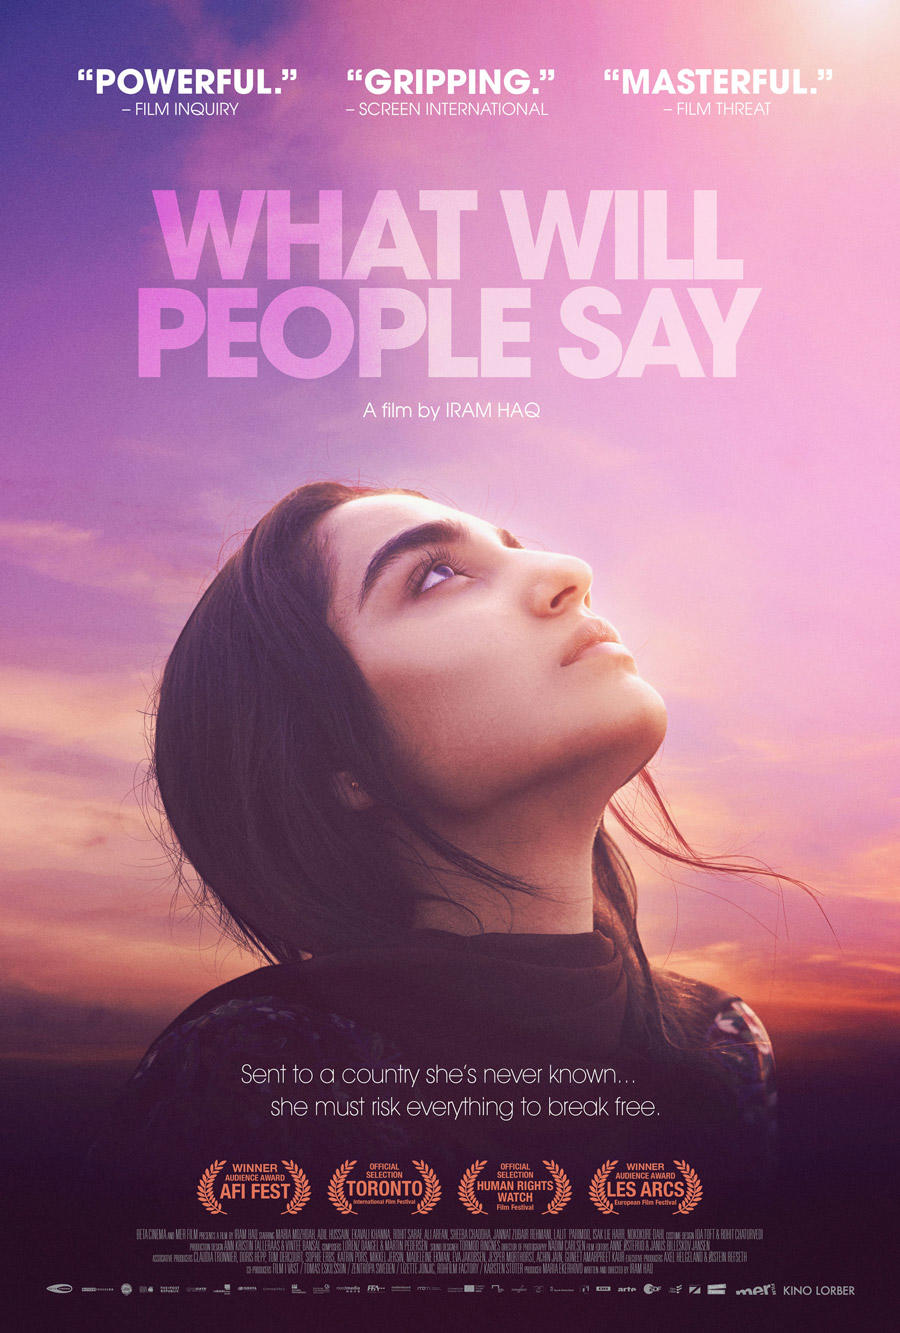 What Will People Say poster art